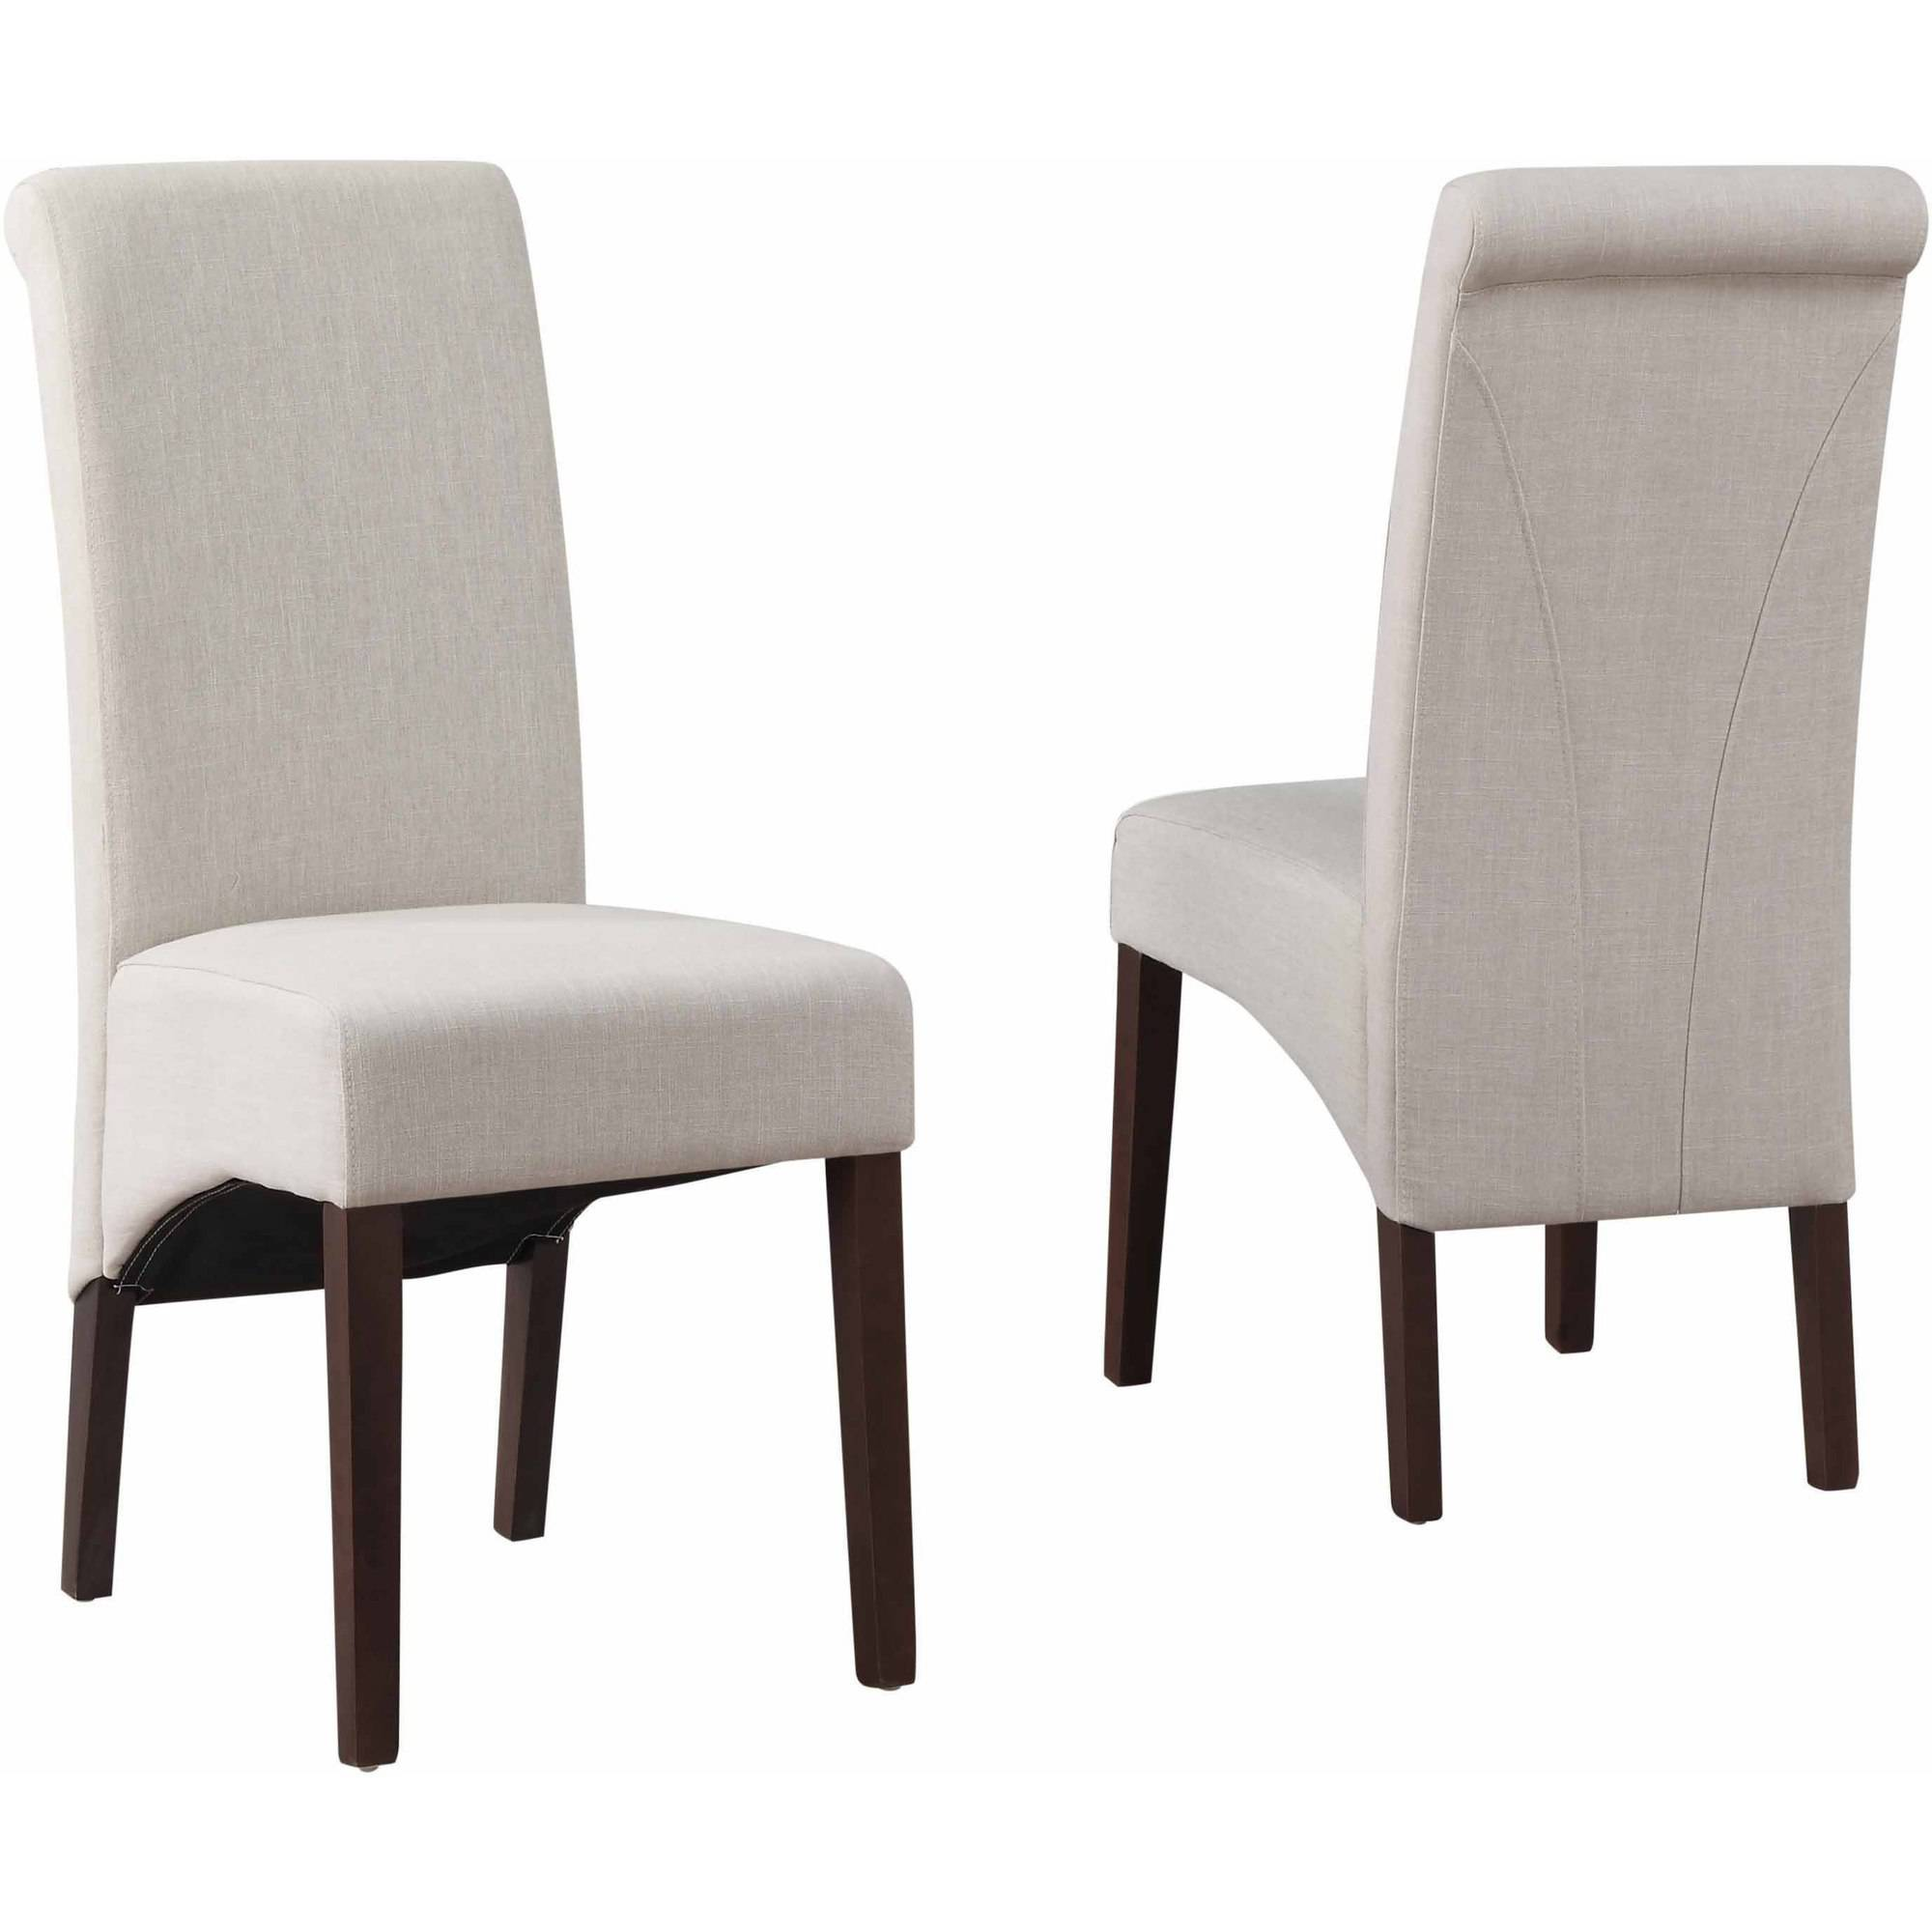 Walker Edison Upholstered Eames Chairs Grey Set of 2 Walmart